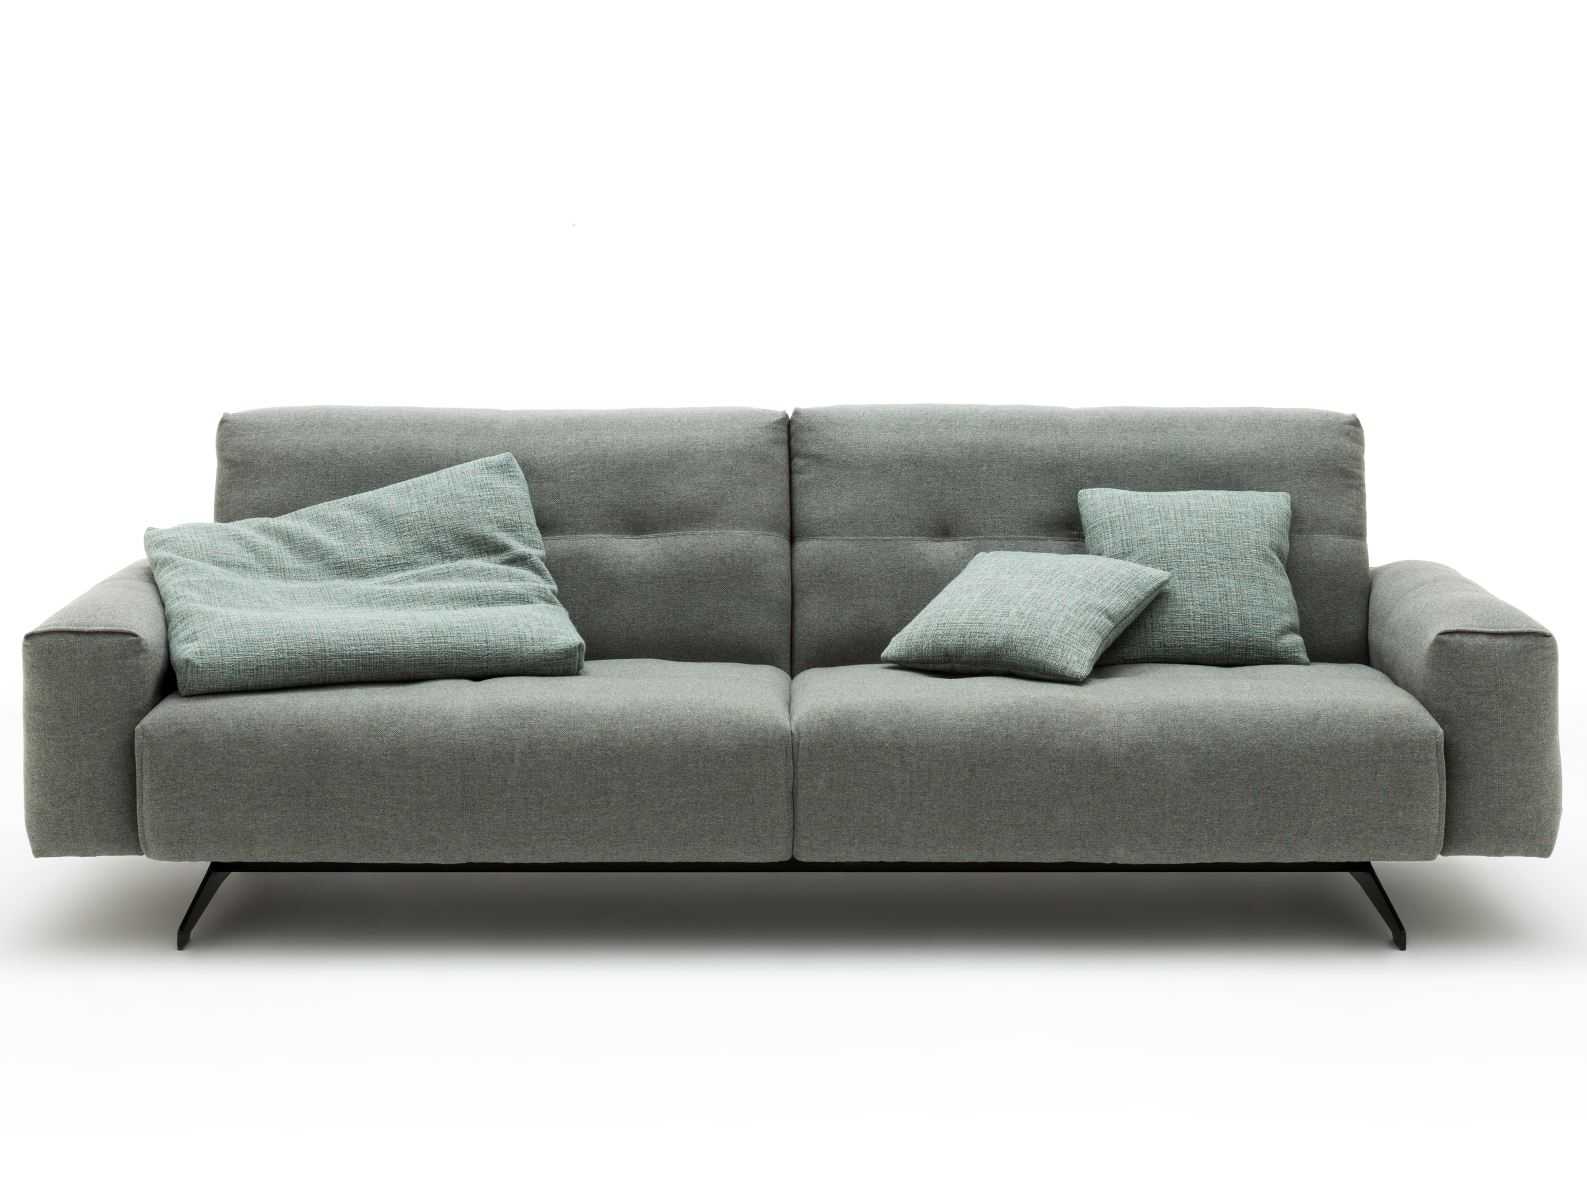 Rolf Benz Modular Sofa 222 Rolf Benz 50 Fabric Sofa Rolf Benz 50 Collection By Rolf